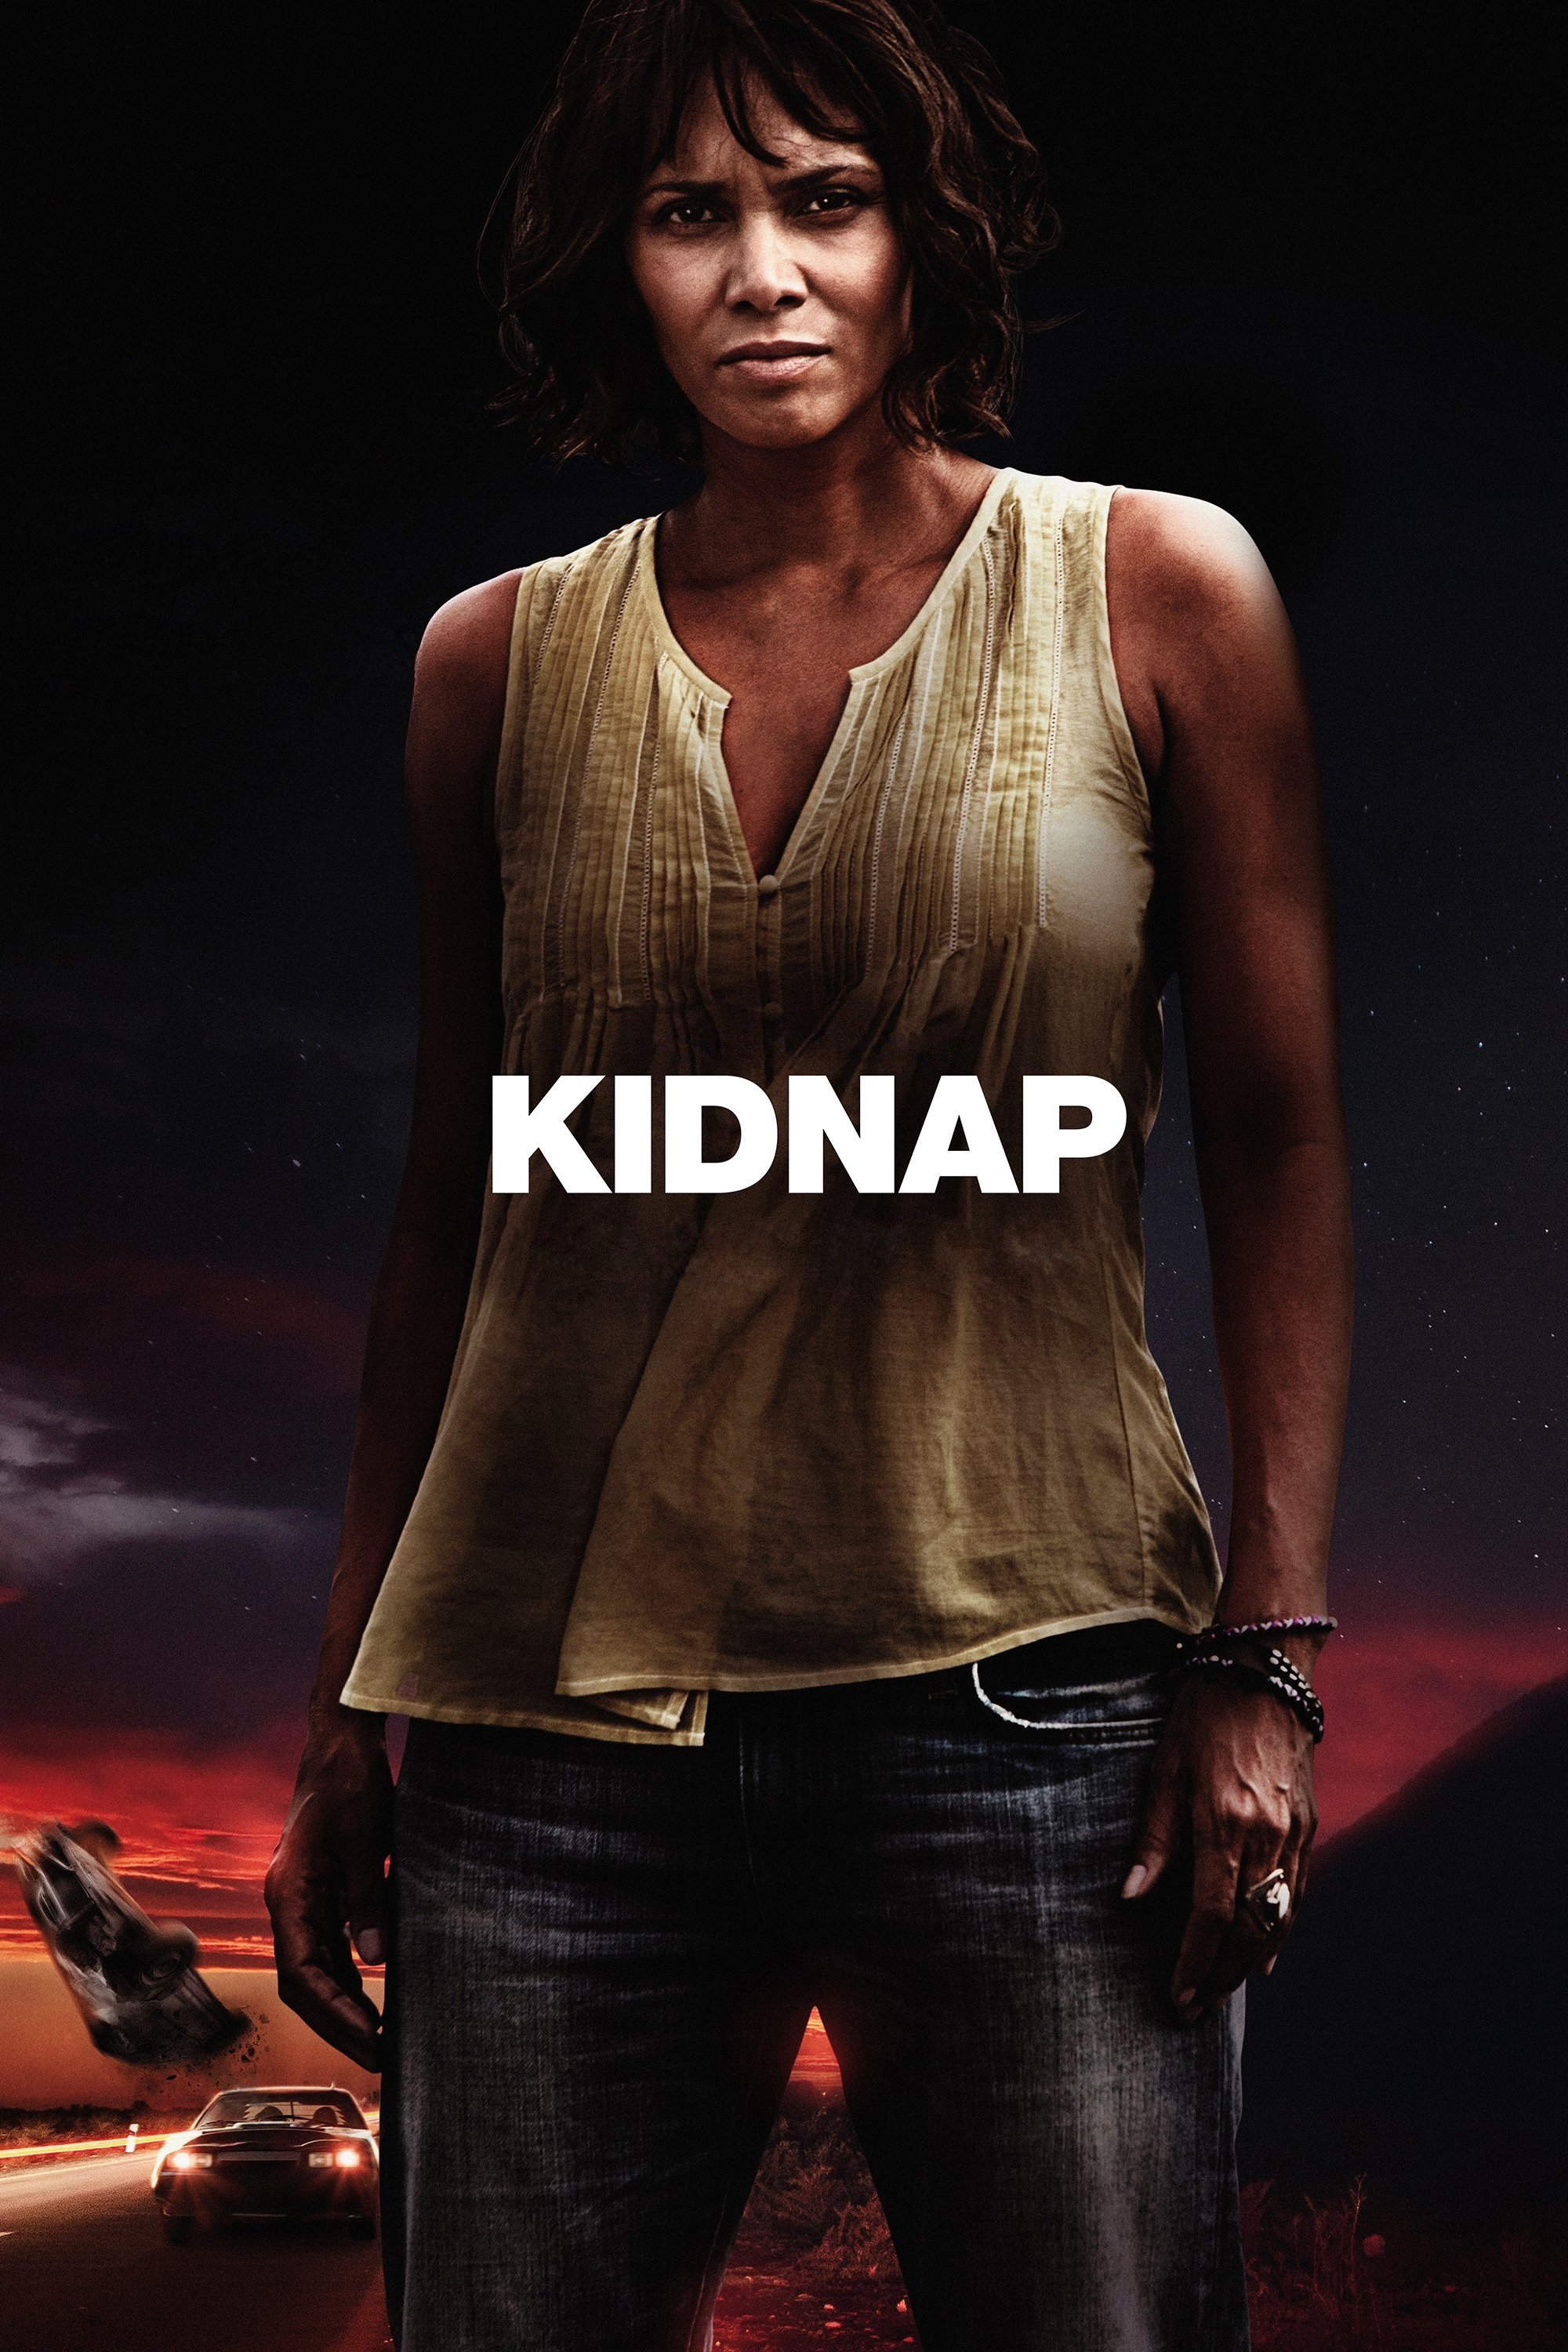 Kidnap - Movie Poster